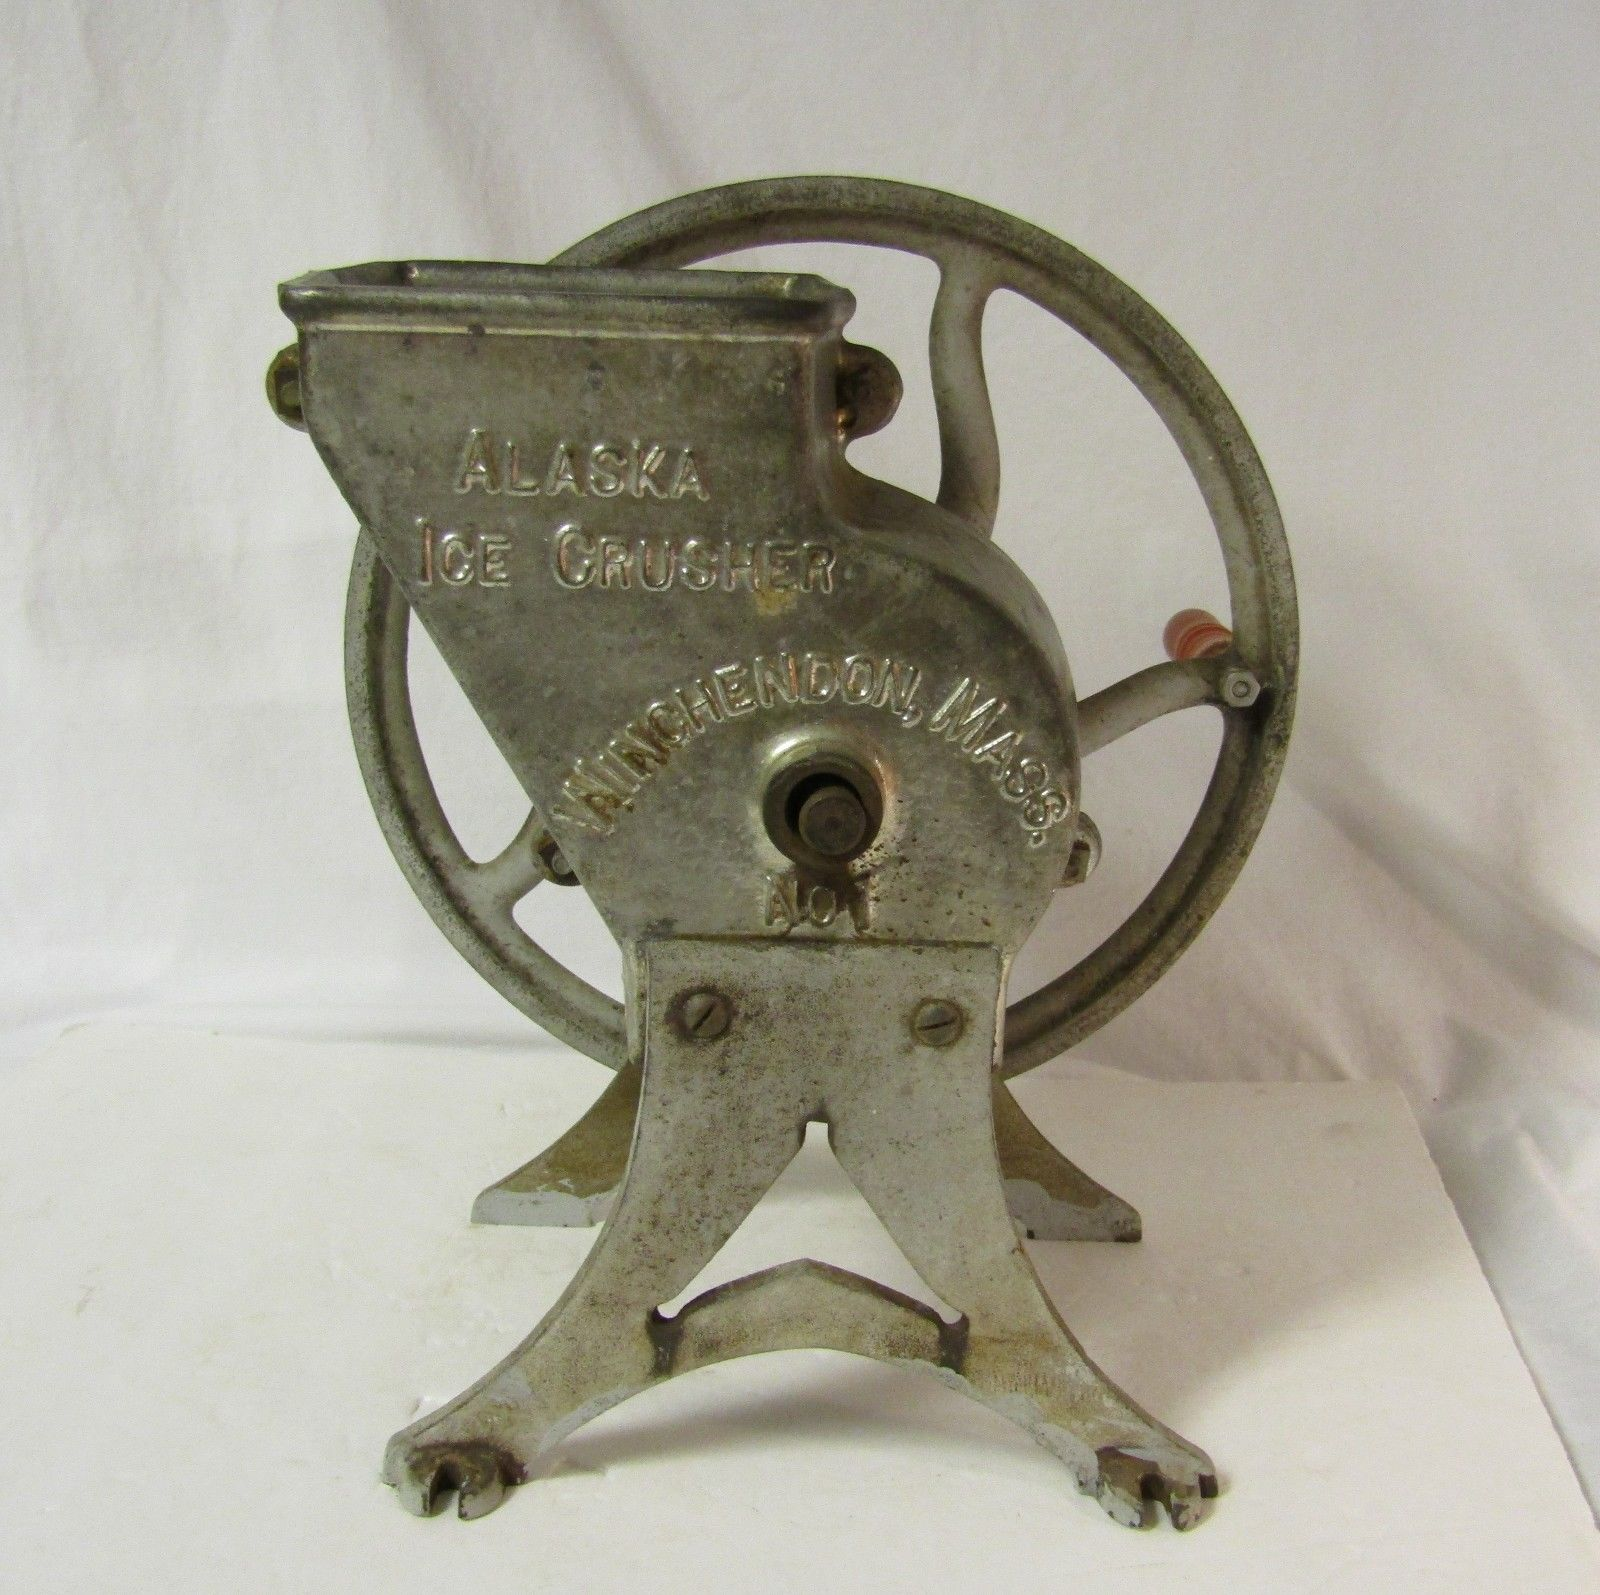 Looks circa early 1900s. The crusher part is cast iron or